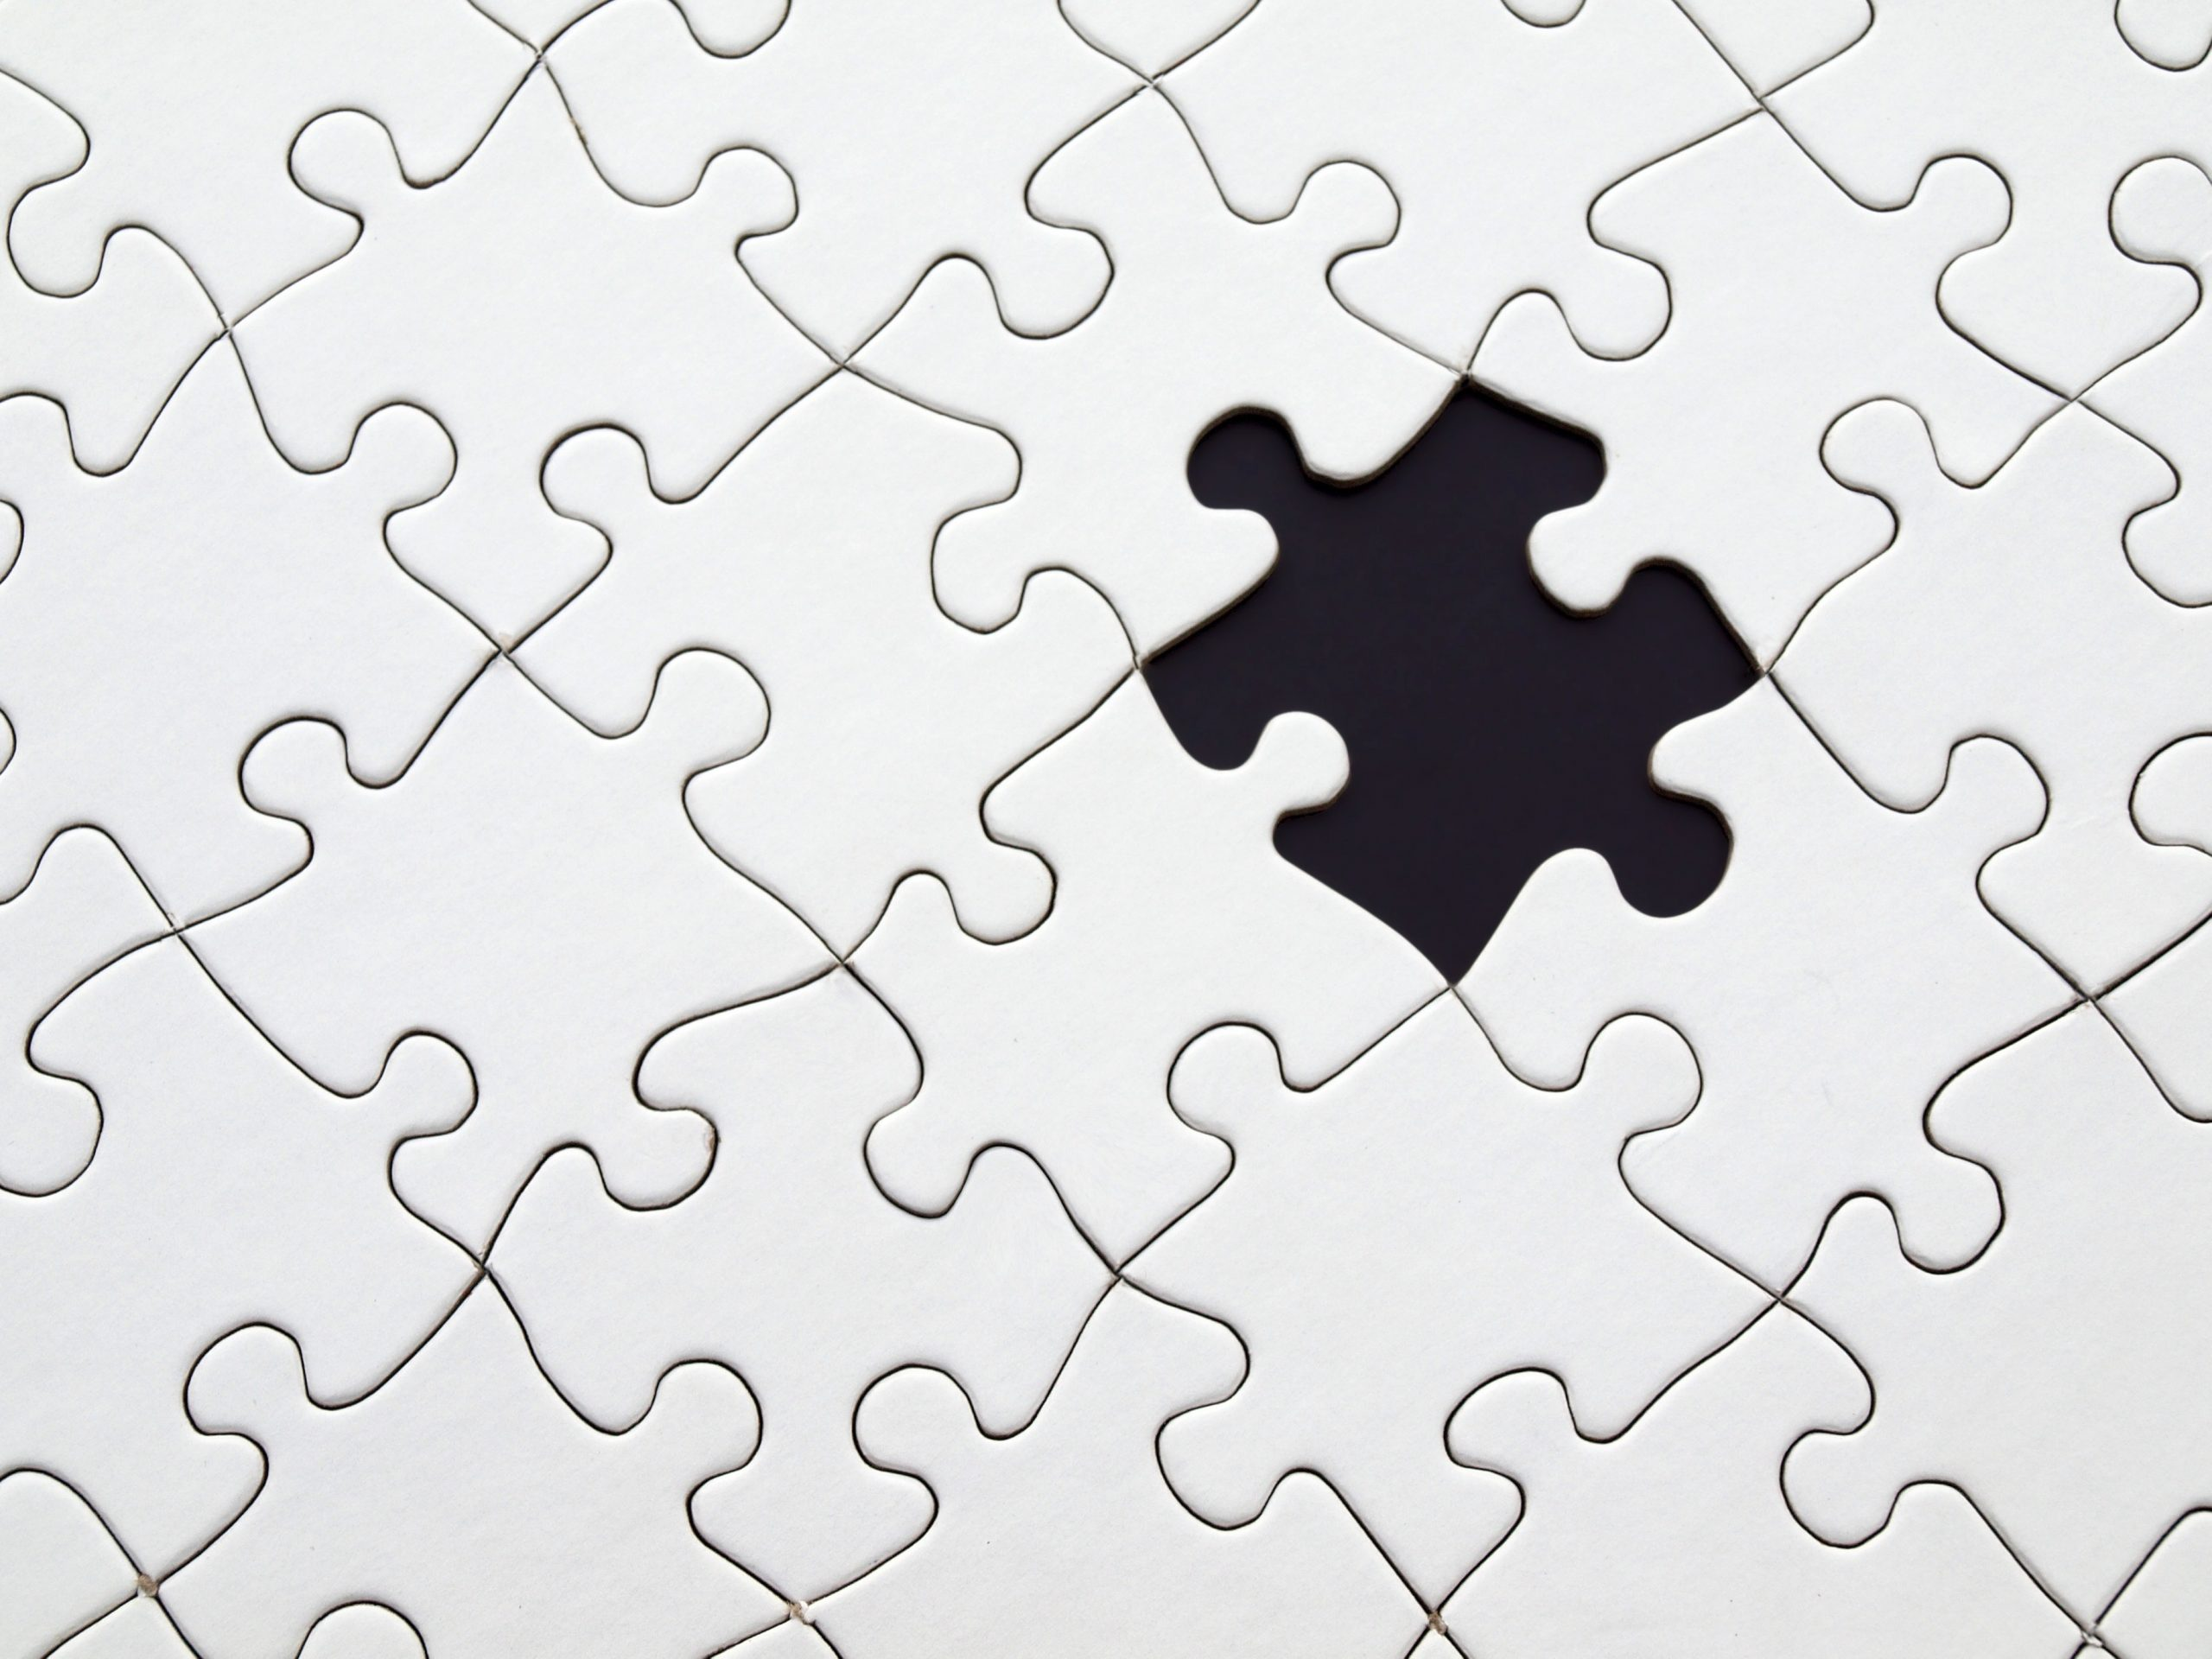 Puzzle with a missing piece